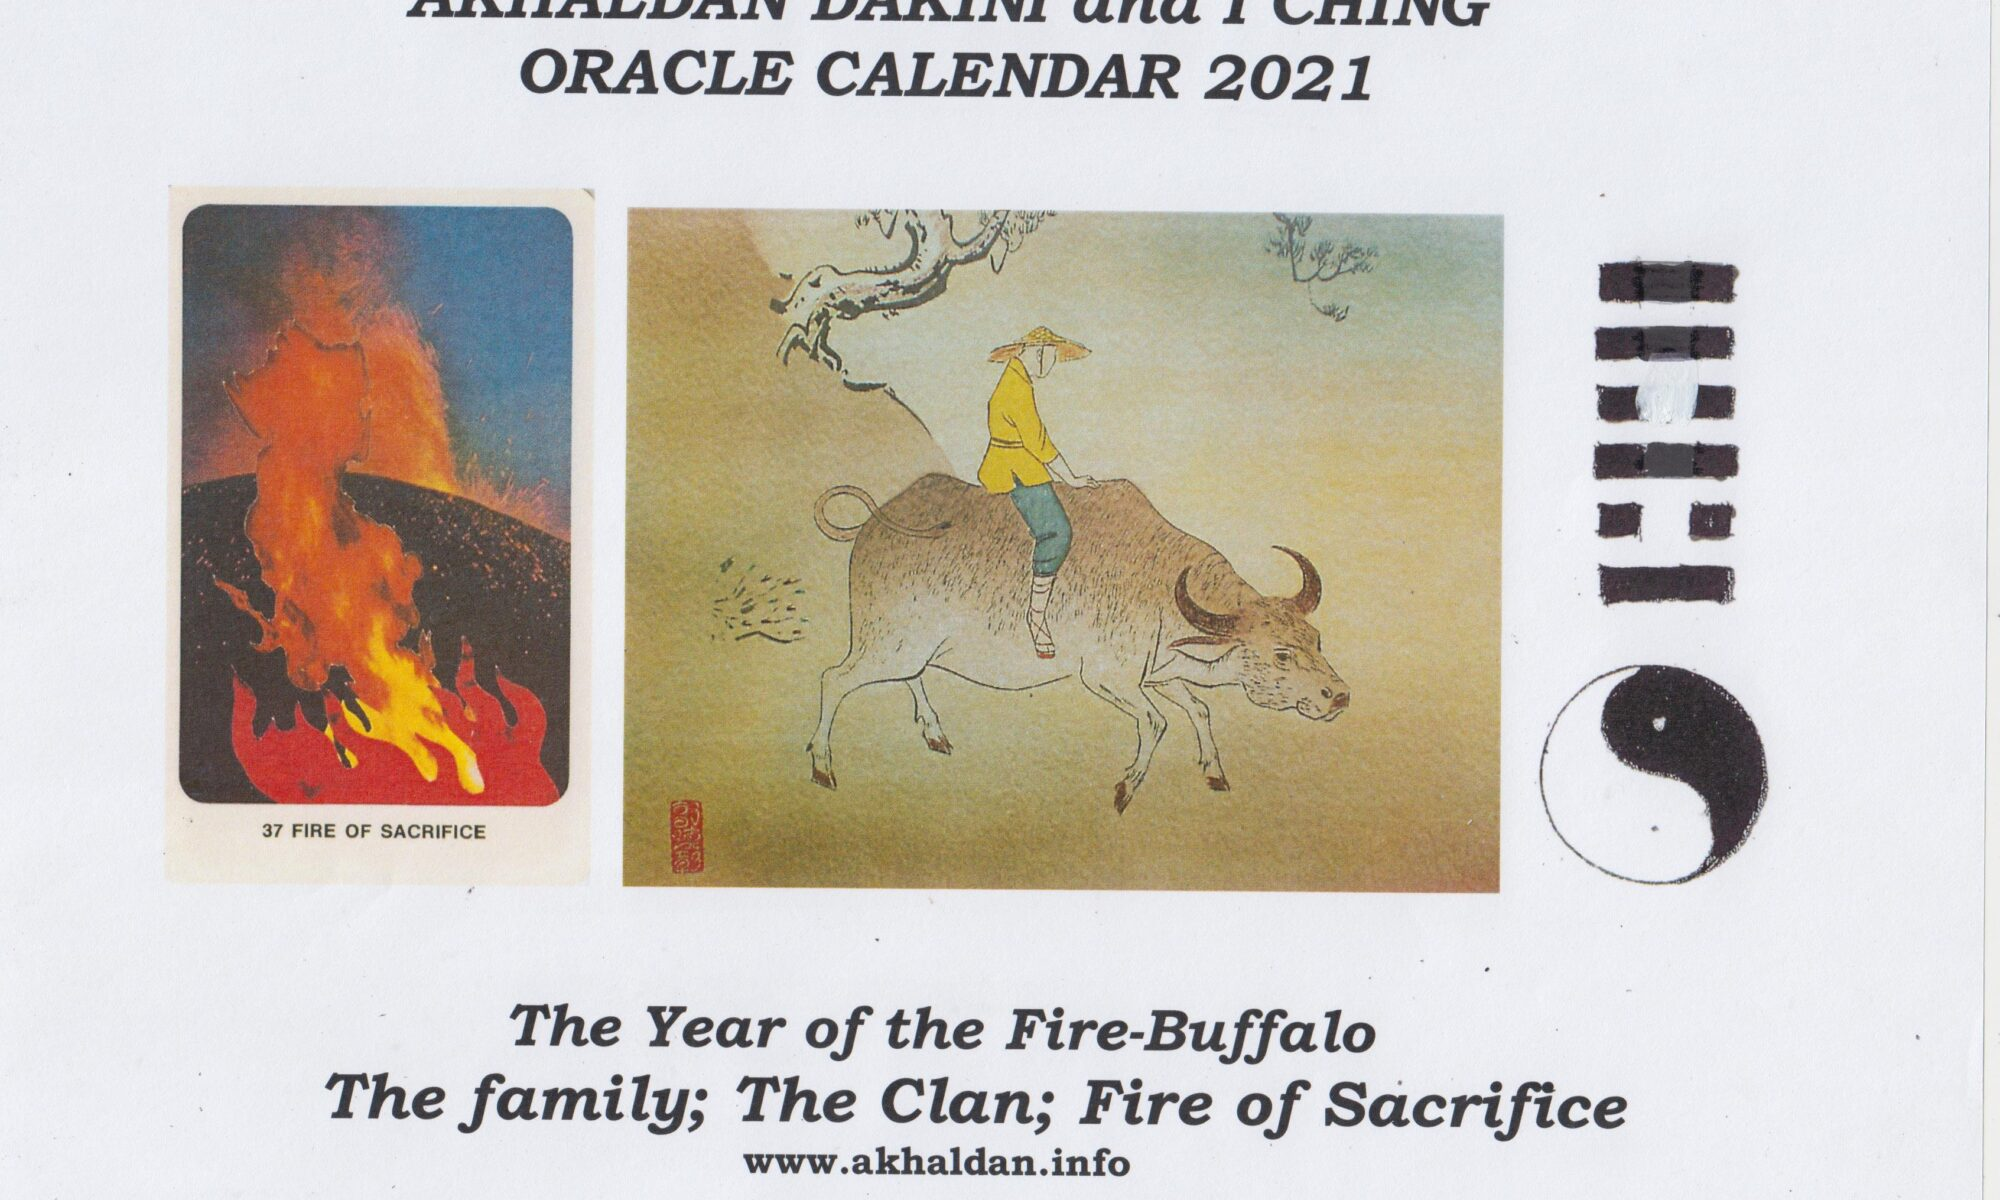 The Year of the Fire-Buffalo